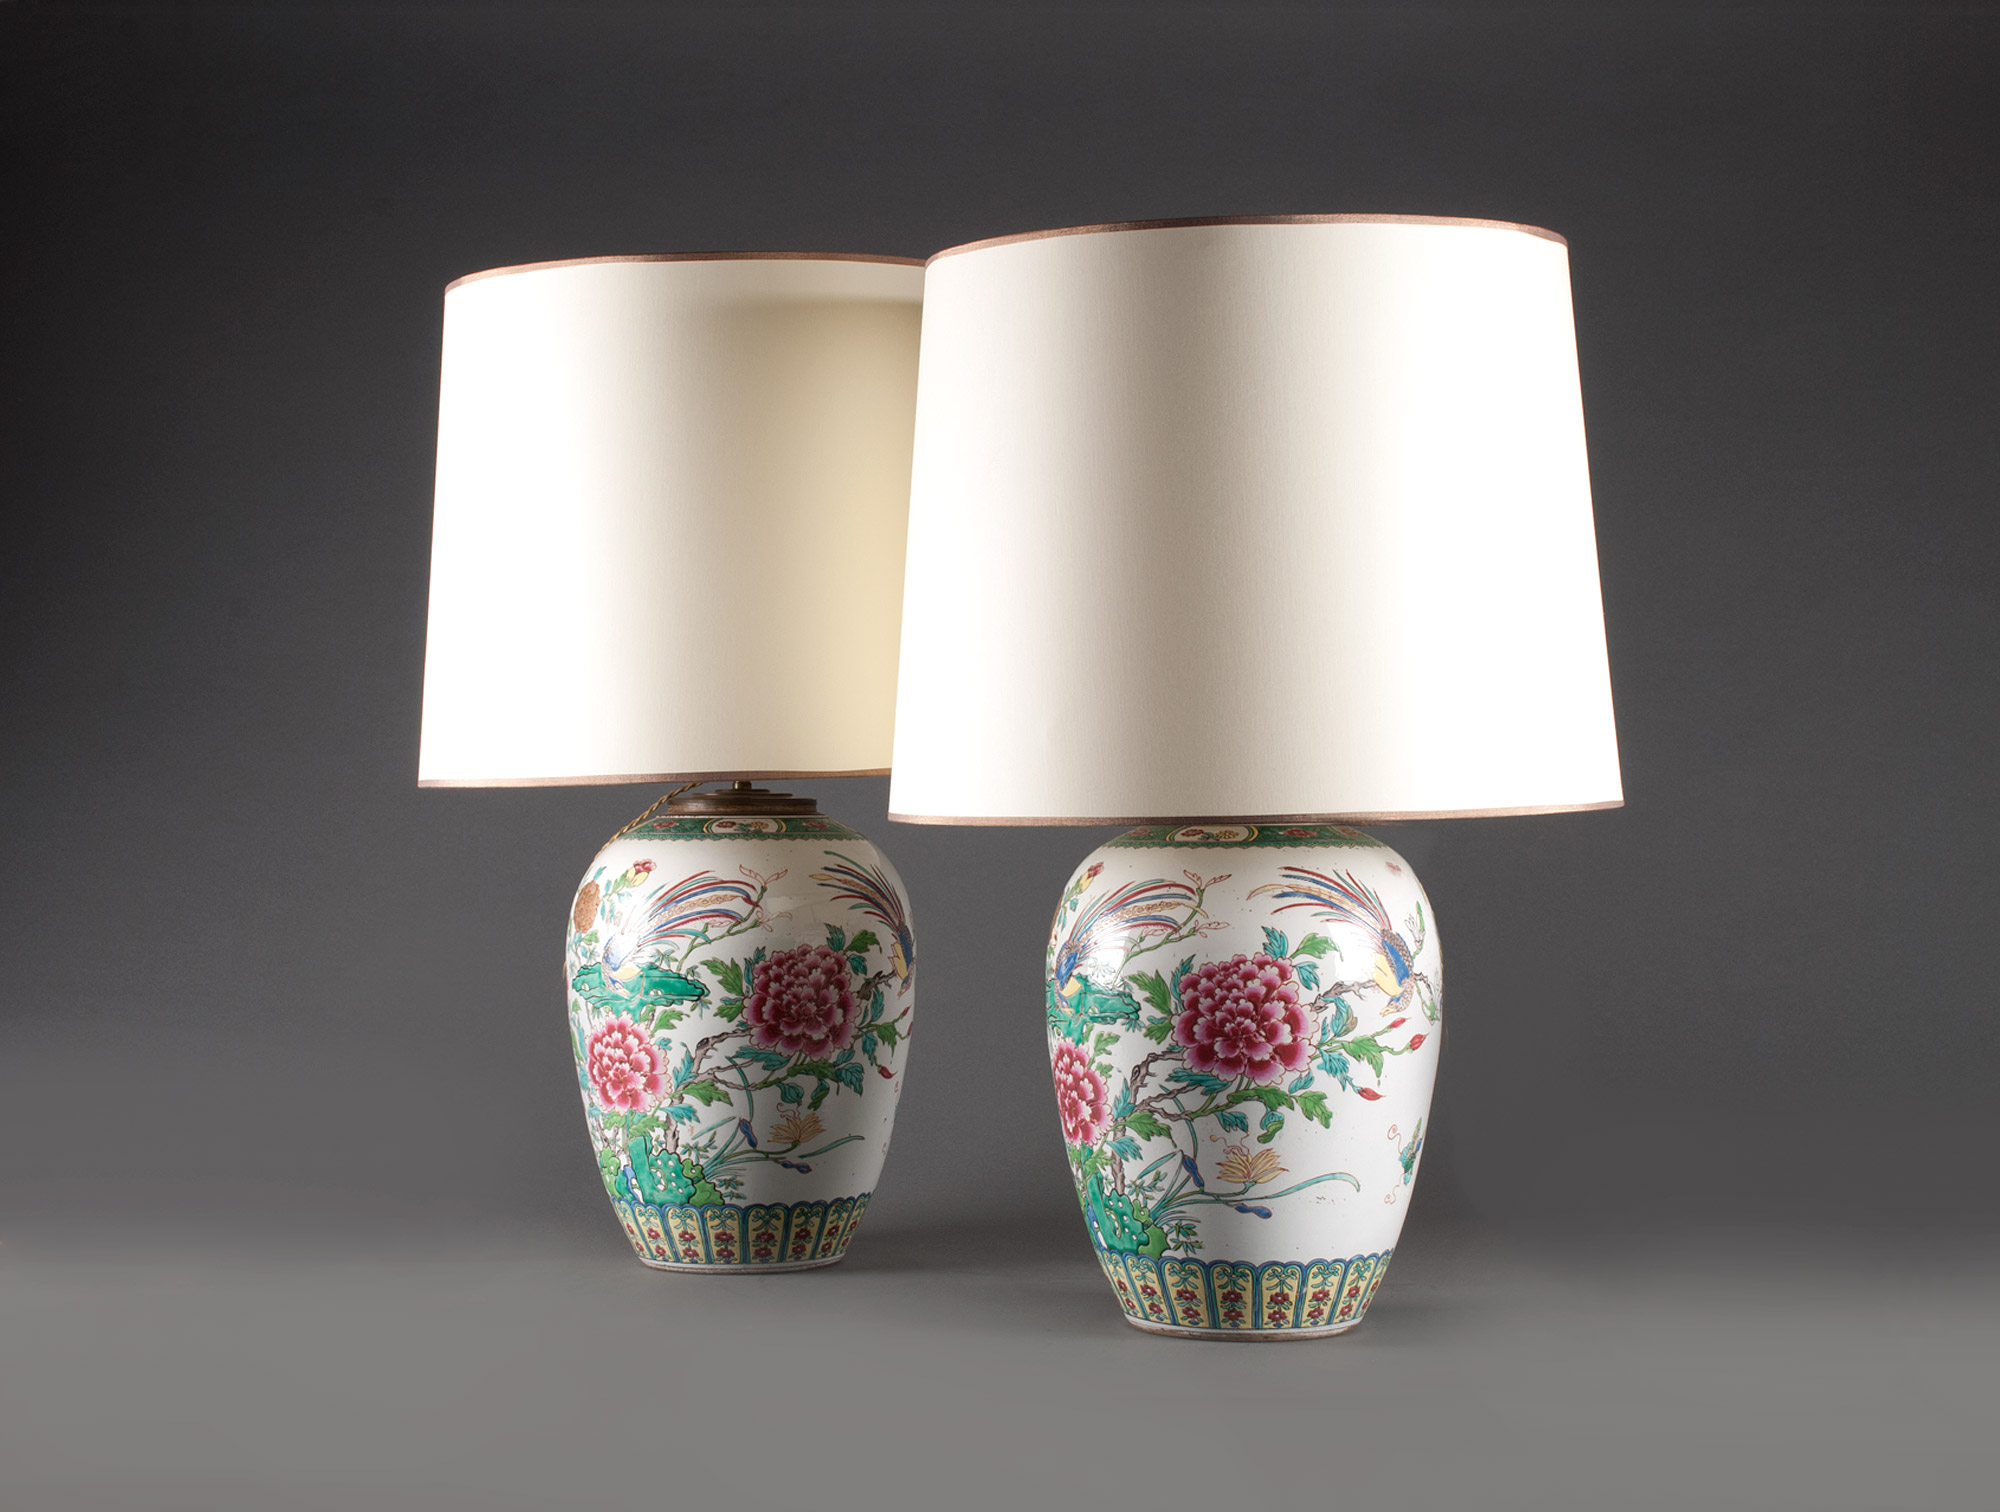 lampes chinoises en porcelaine soubrier louer luminaires lampe xixe. Black Bedroom Furniture Sets. Home Design Ideas